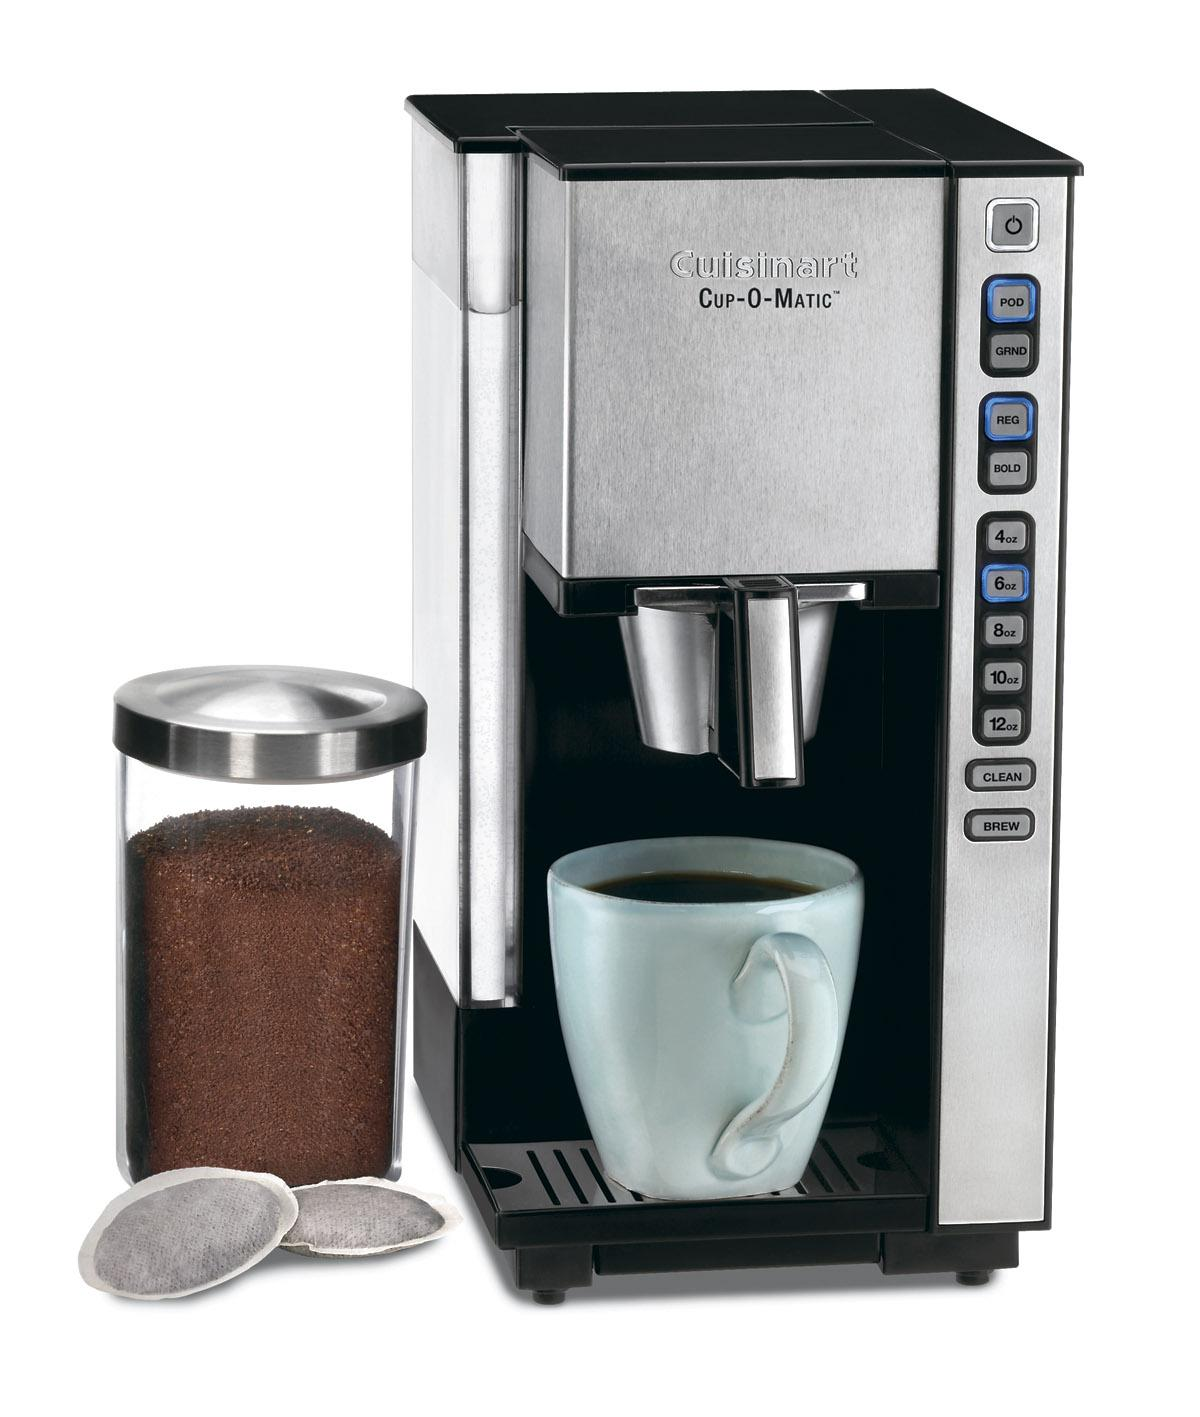 Cuisinart SS-1 Cup-O-Matic Single-serve Black and Brushed Chrome Coffeemaker (Refurbished)